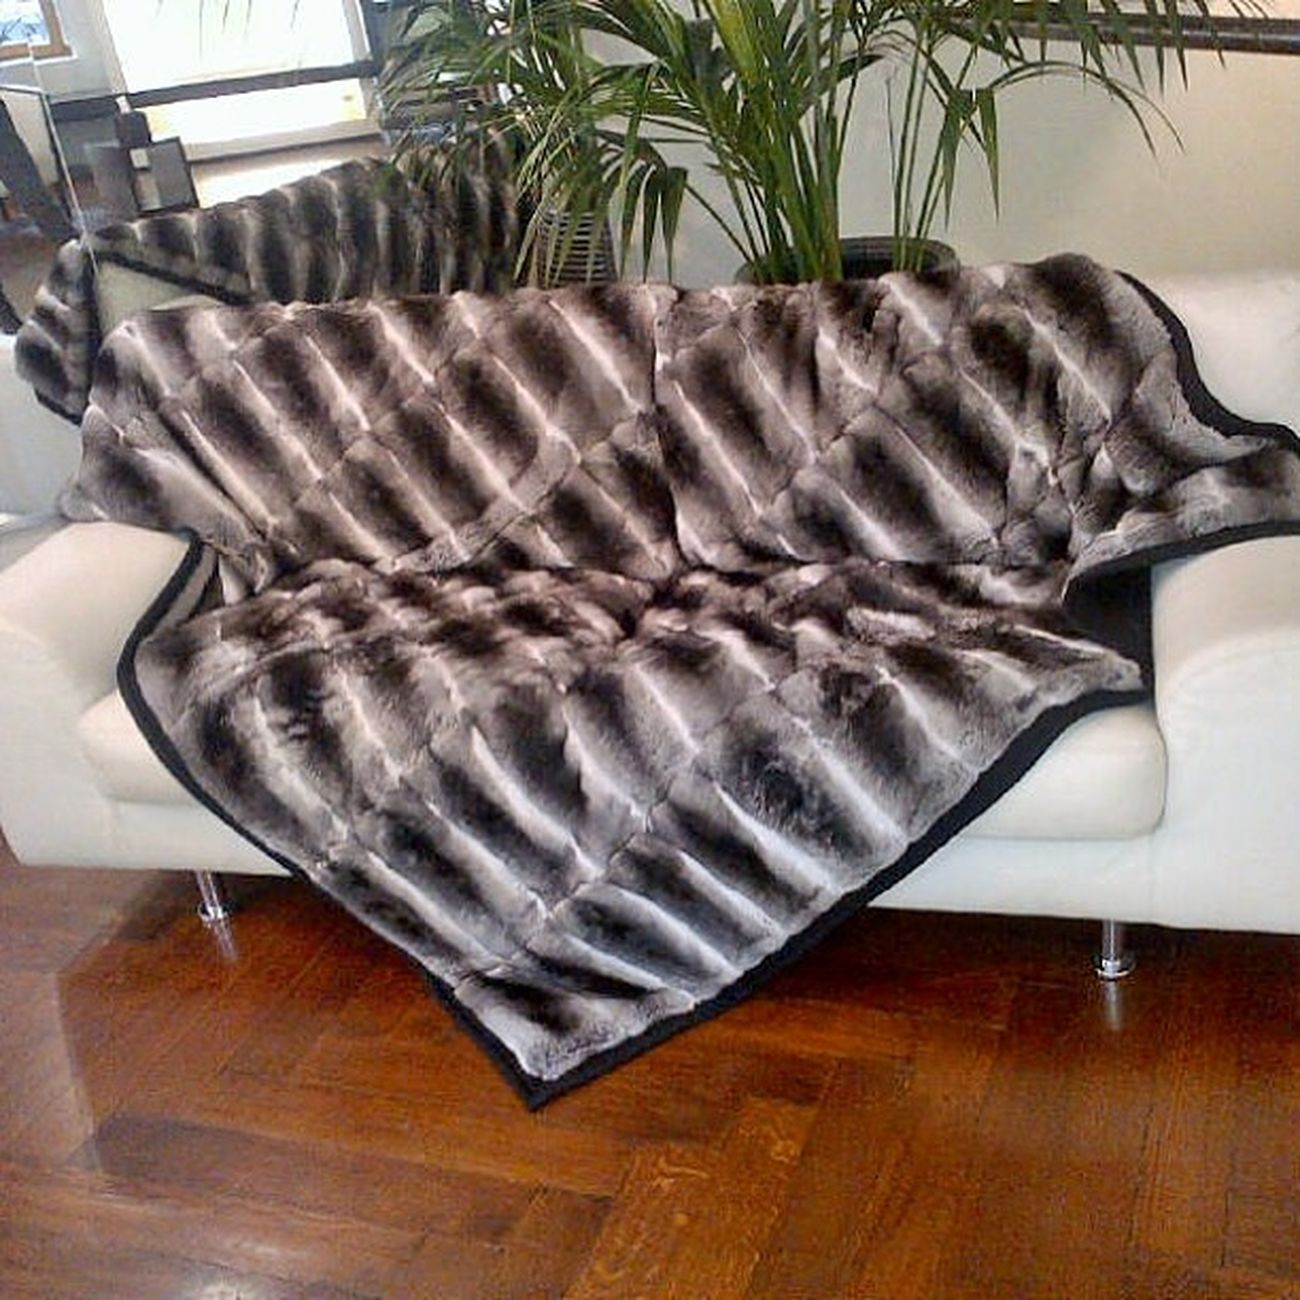 Exclusive at Daniel Benjamin Geneva, naturel chinchilla bed and sofa cover 2 X 2 m Danielbenjamingeneva Danielbenjamin Fur Chinchilla luxury fashion Switzerland Geneva Russia Moscow Kazakhstan Astana @danielbenjamingeneva